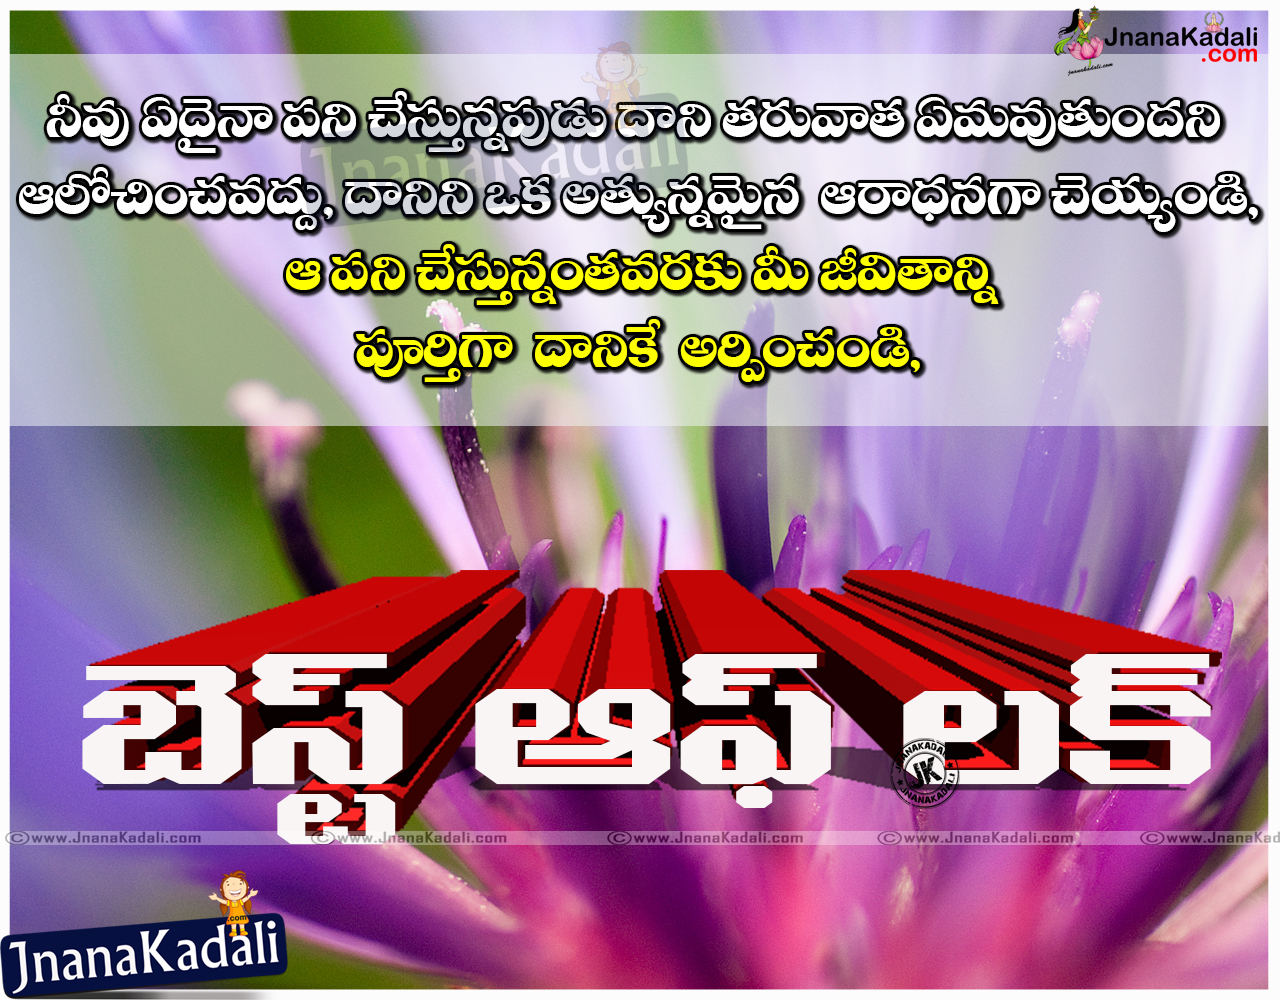 2017 brainysms all the best quotations for your boss in telugu language top inspiring all the best kristyandbryce Images